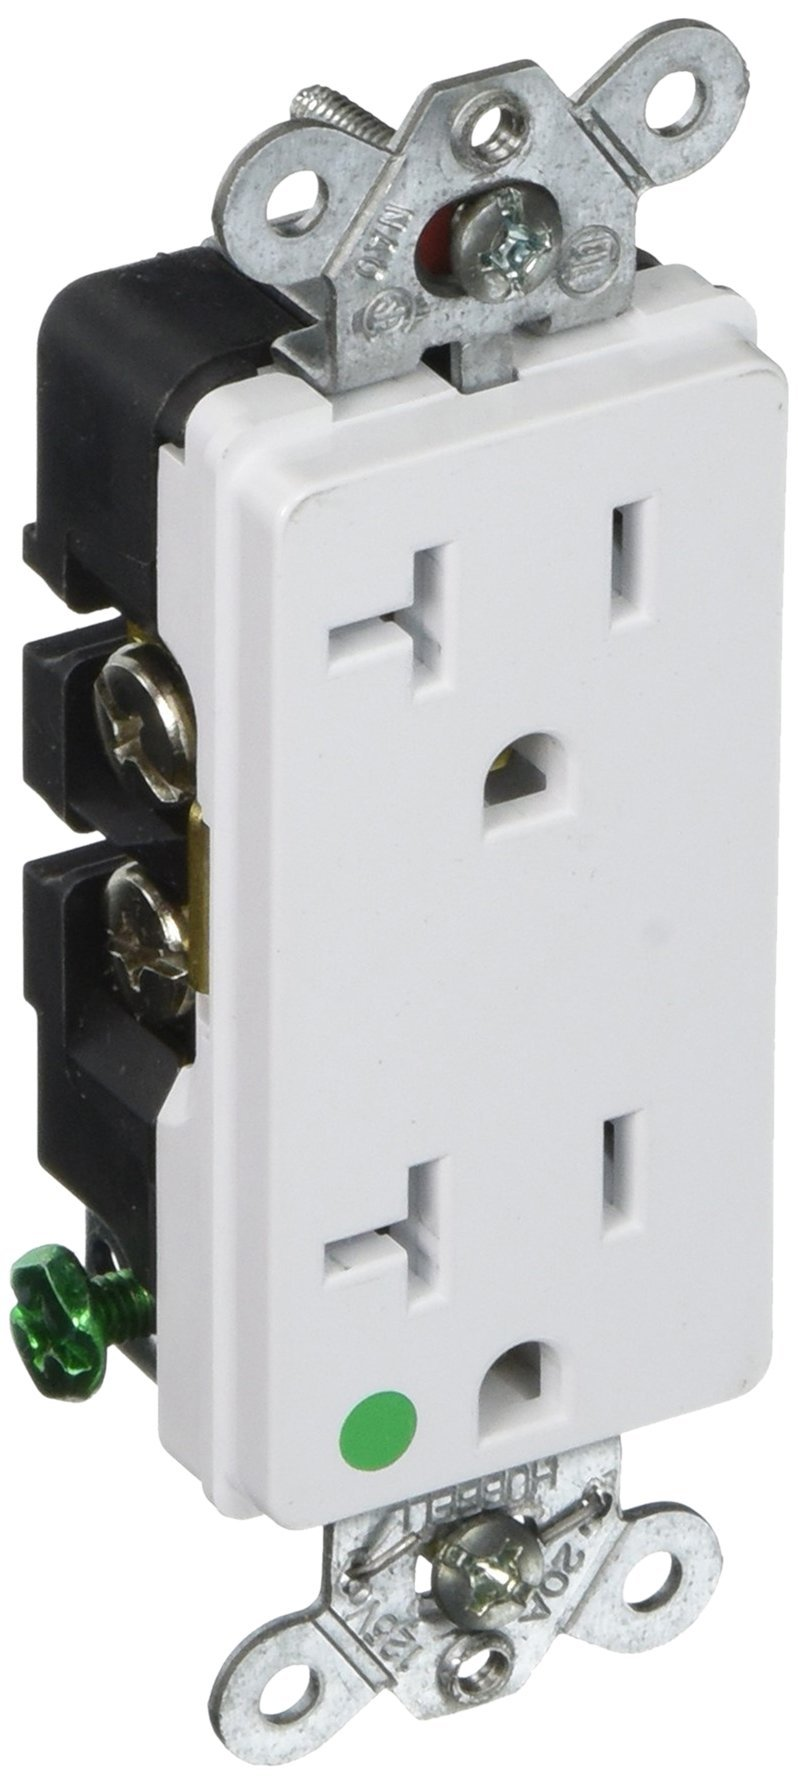 Hubbell HBL2182WA Decorator-Style Hospital Grade Receptacle, 20 amp, 125V, 5-20R, White